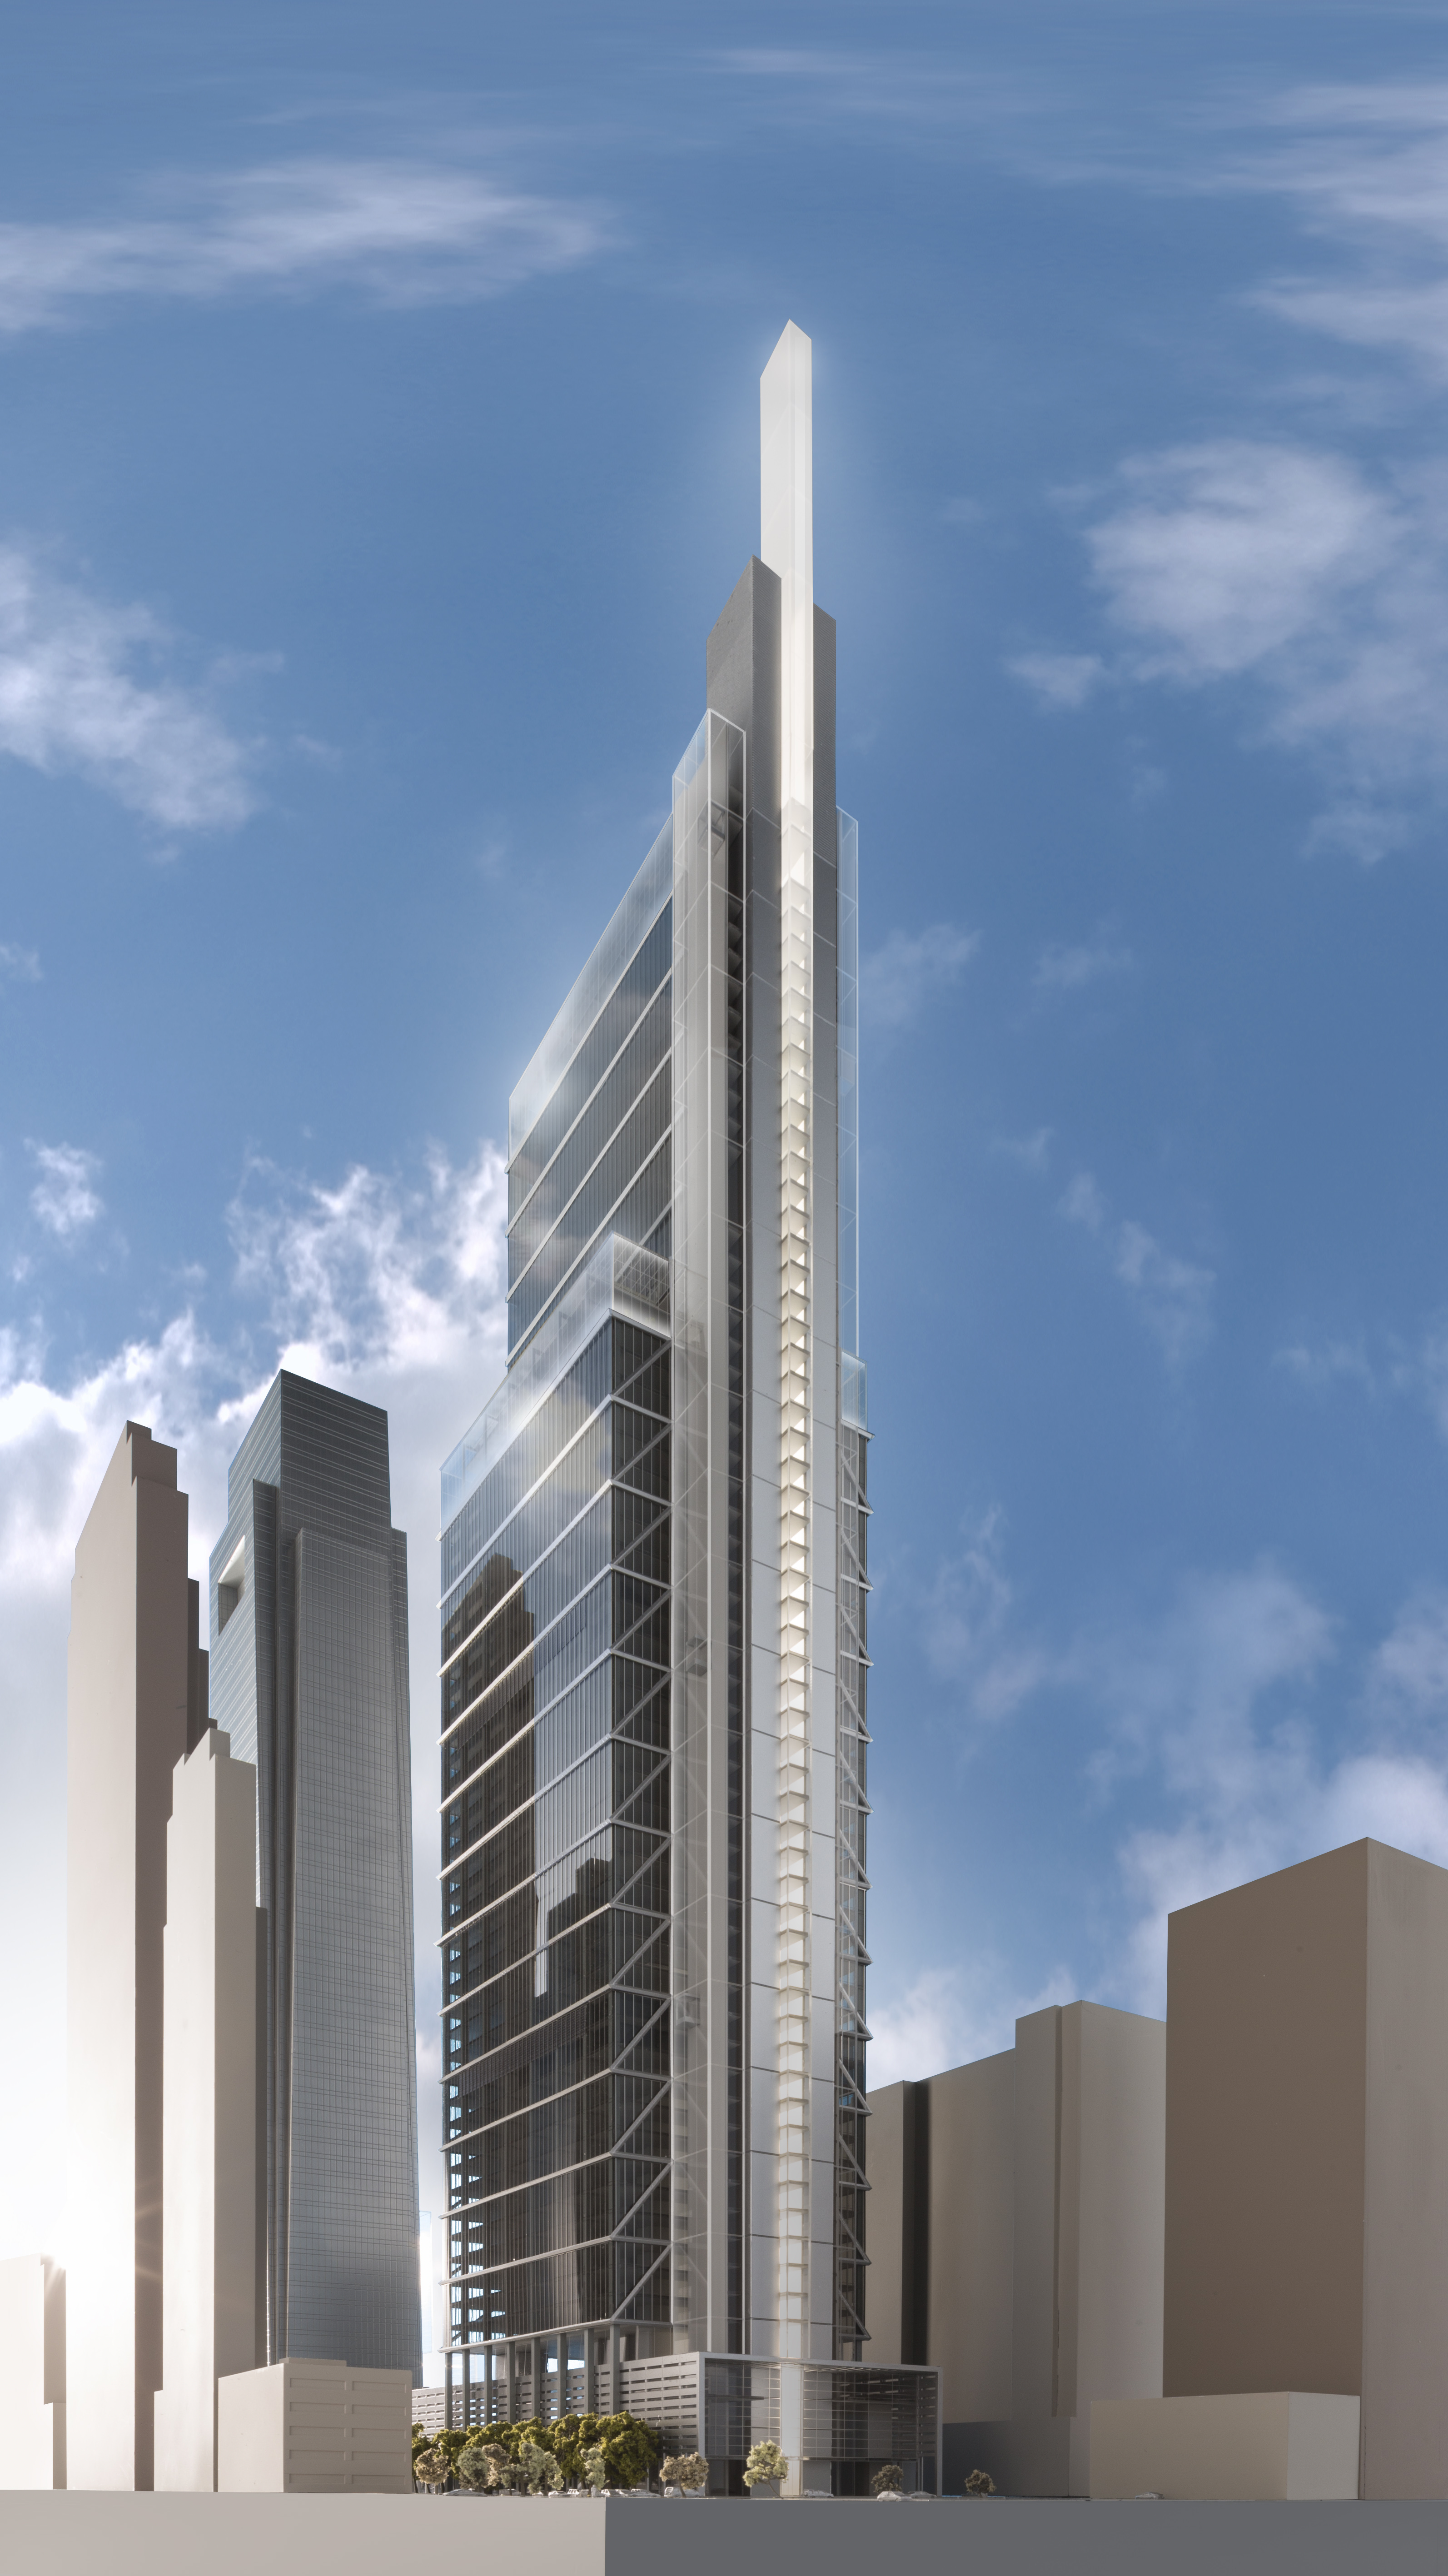 Rendering of the 'Comcast Innovation and Technology Center' designed by world-renowned architect Lord Norman Foster of Foster + Partners. The 59-story, glass and stainless steel tower is expected to be completed by year-end 2017. (Photo: Business Wire)